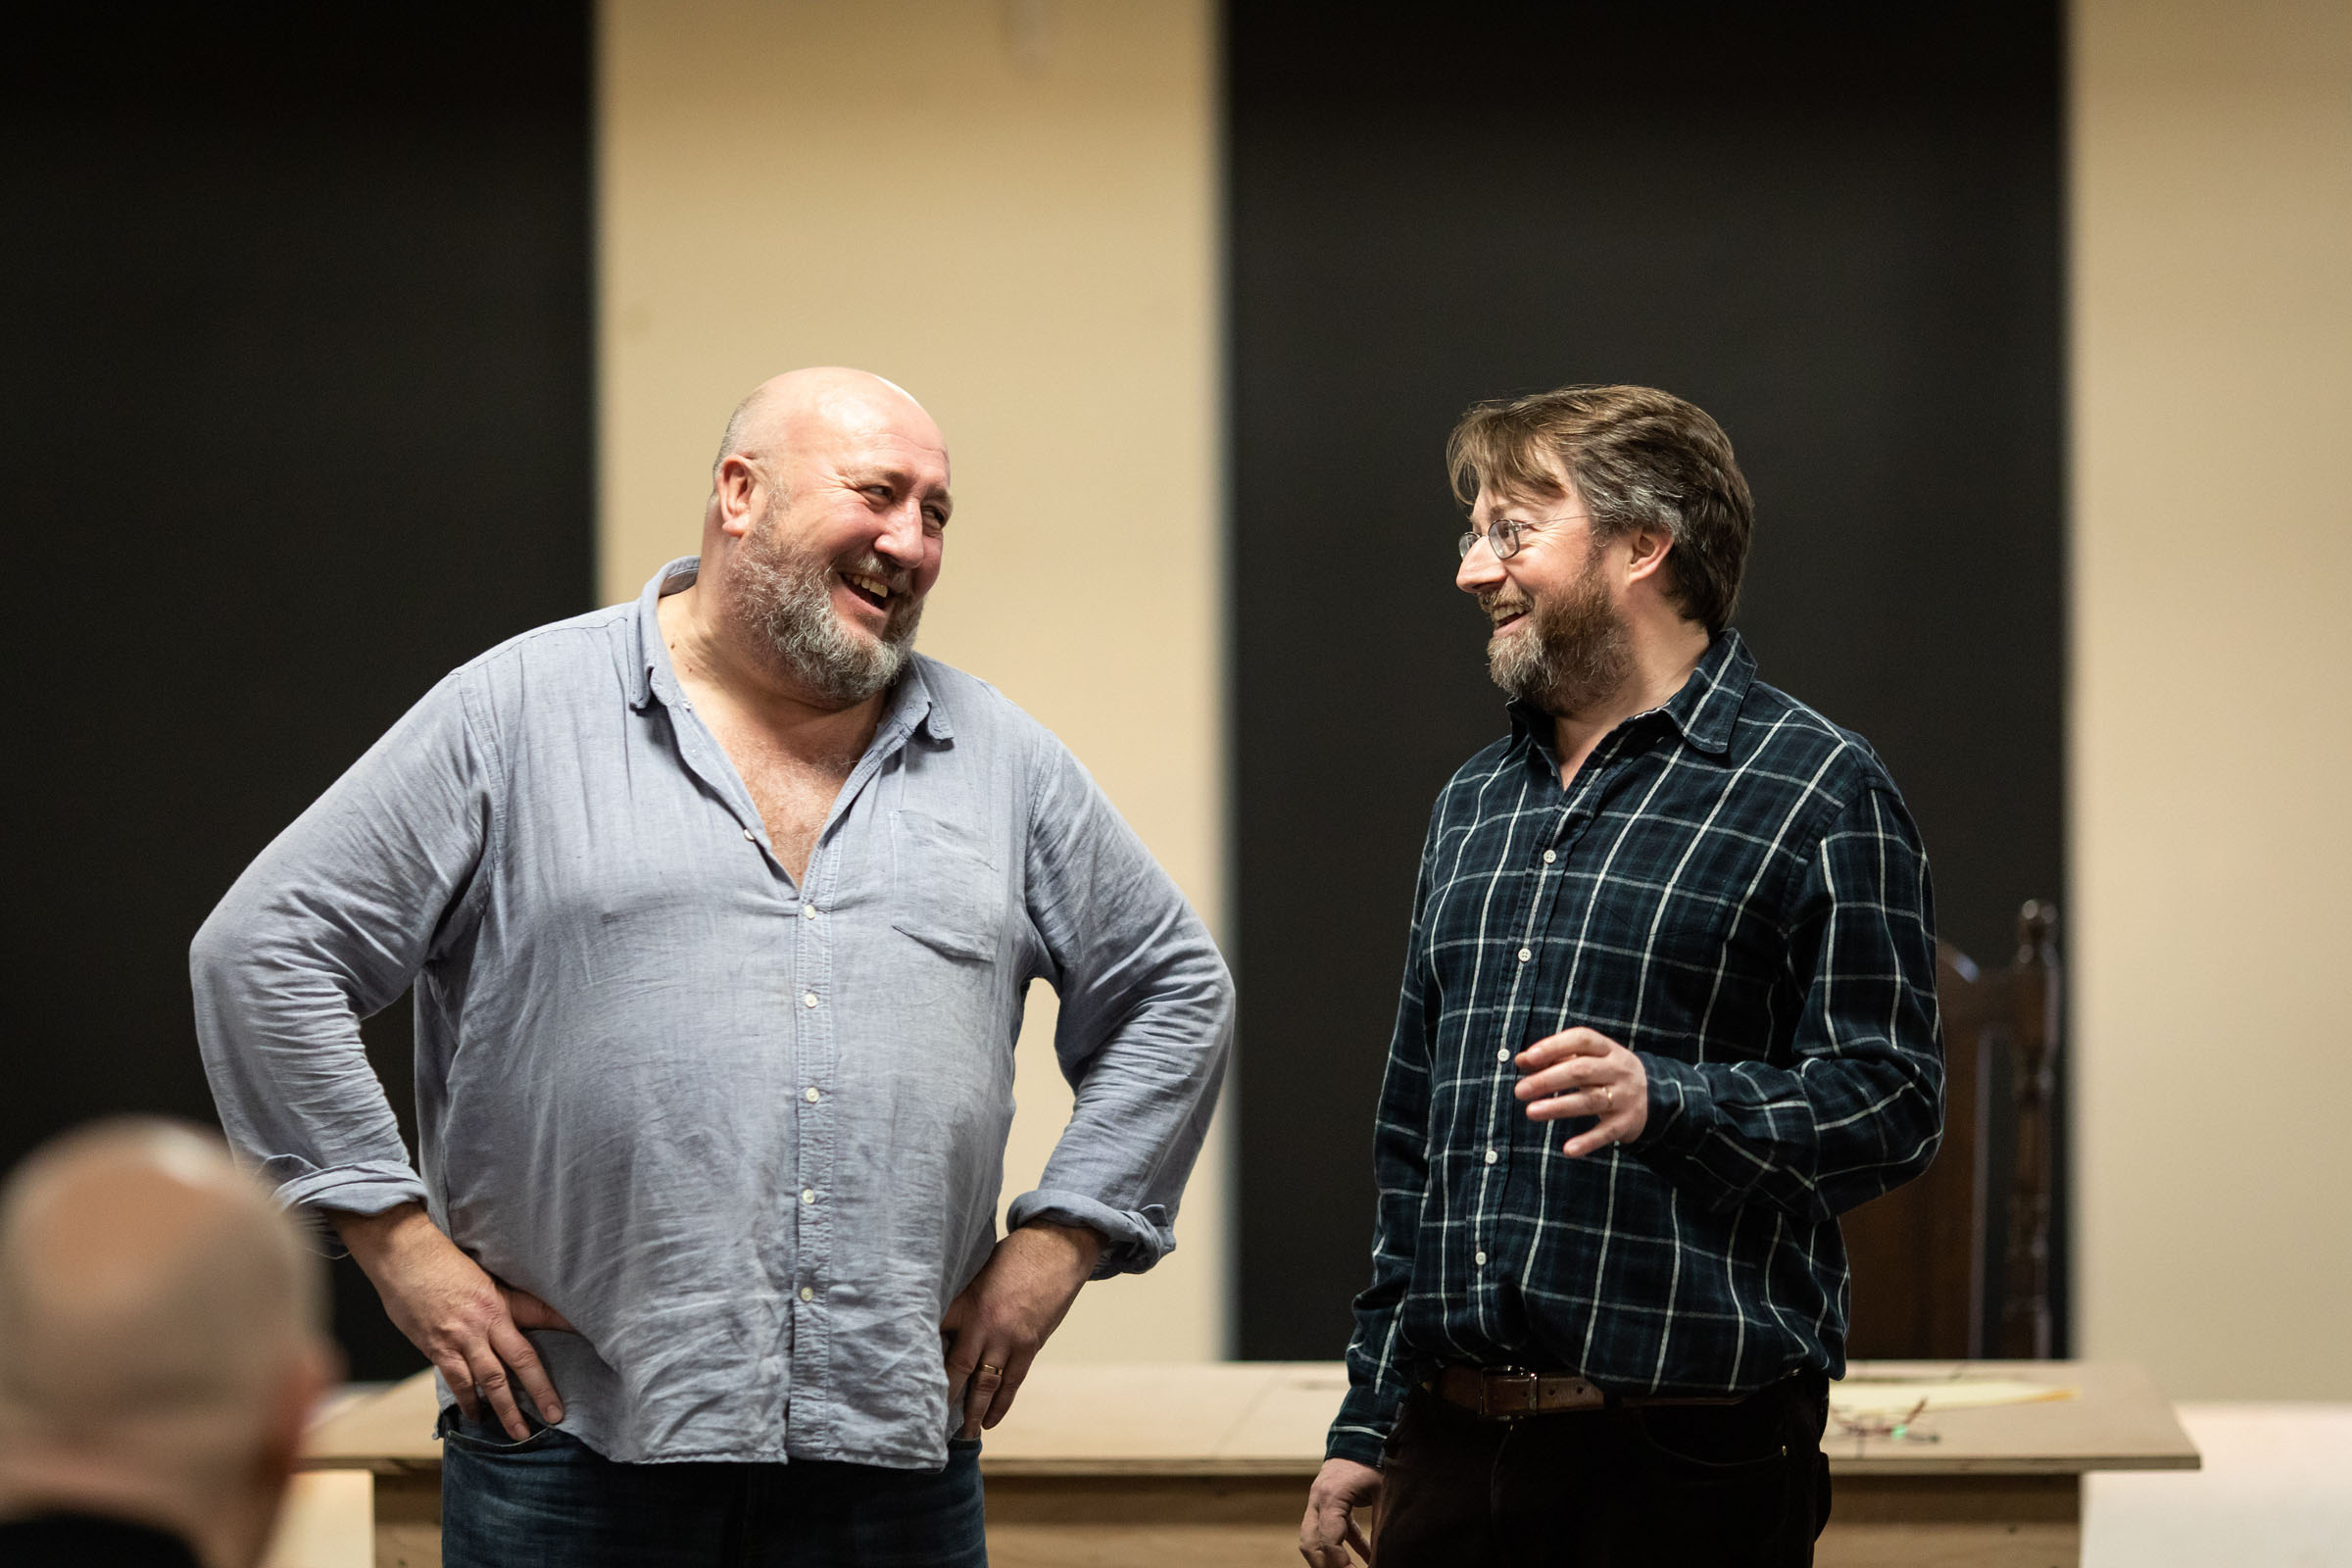 Steve Speirs (Burbage) with David Mitchell (William Shakespeare) during rehearsals for 'The Upstart Crow'